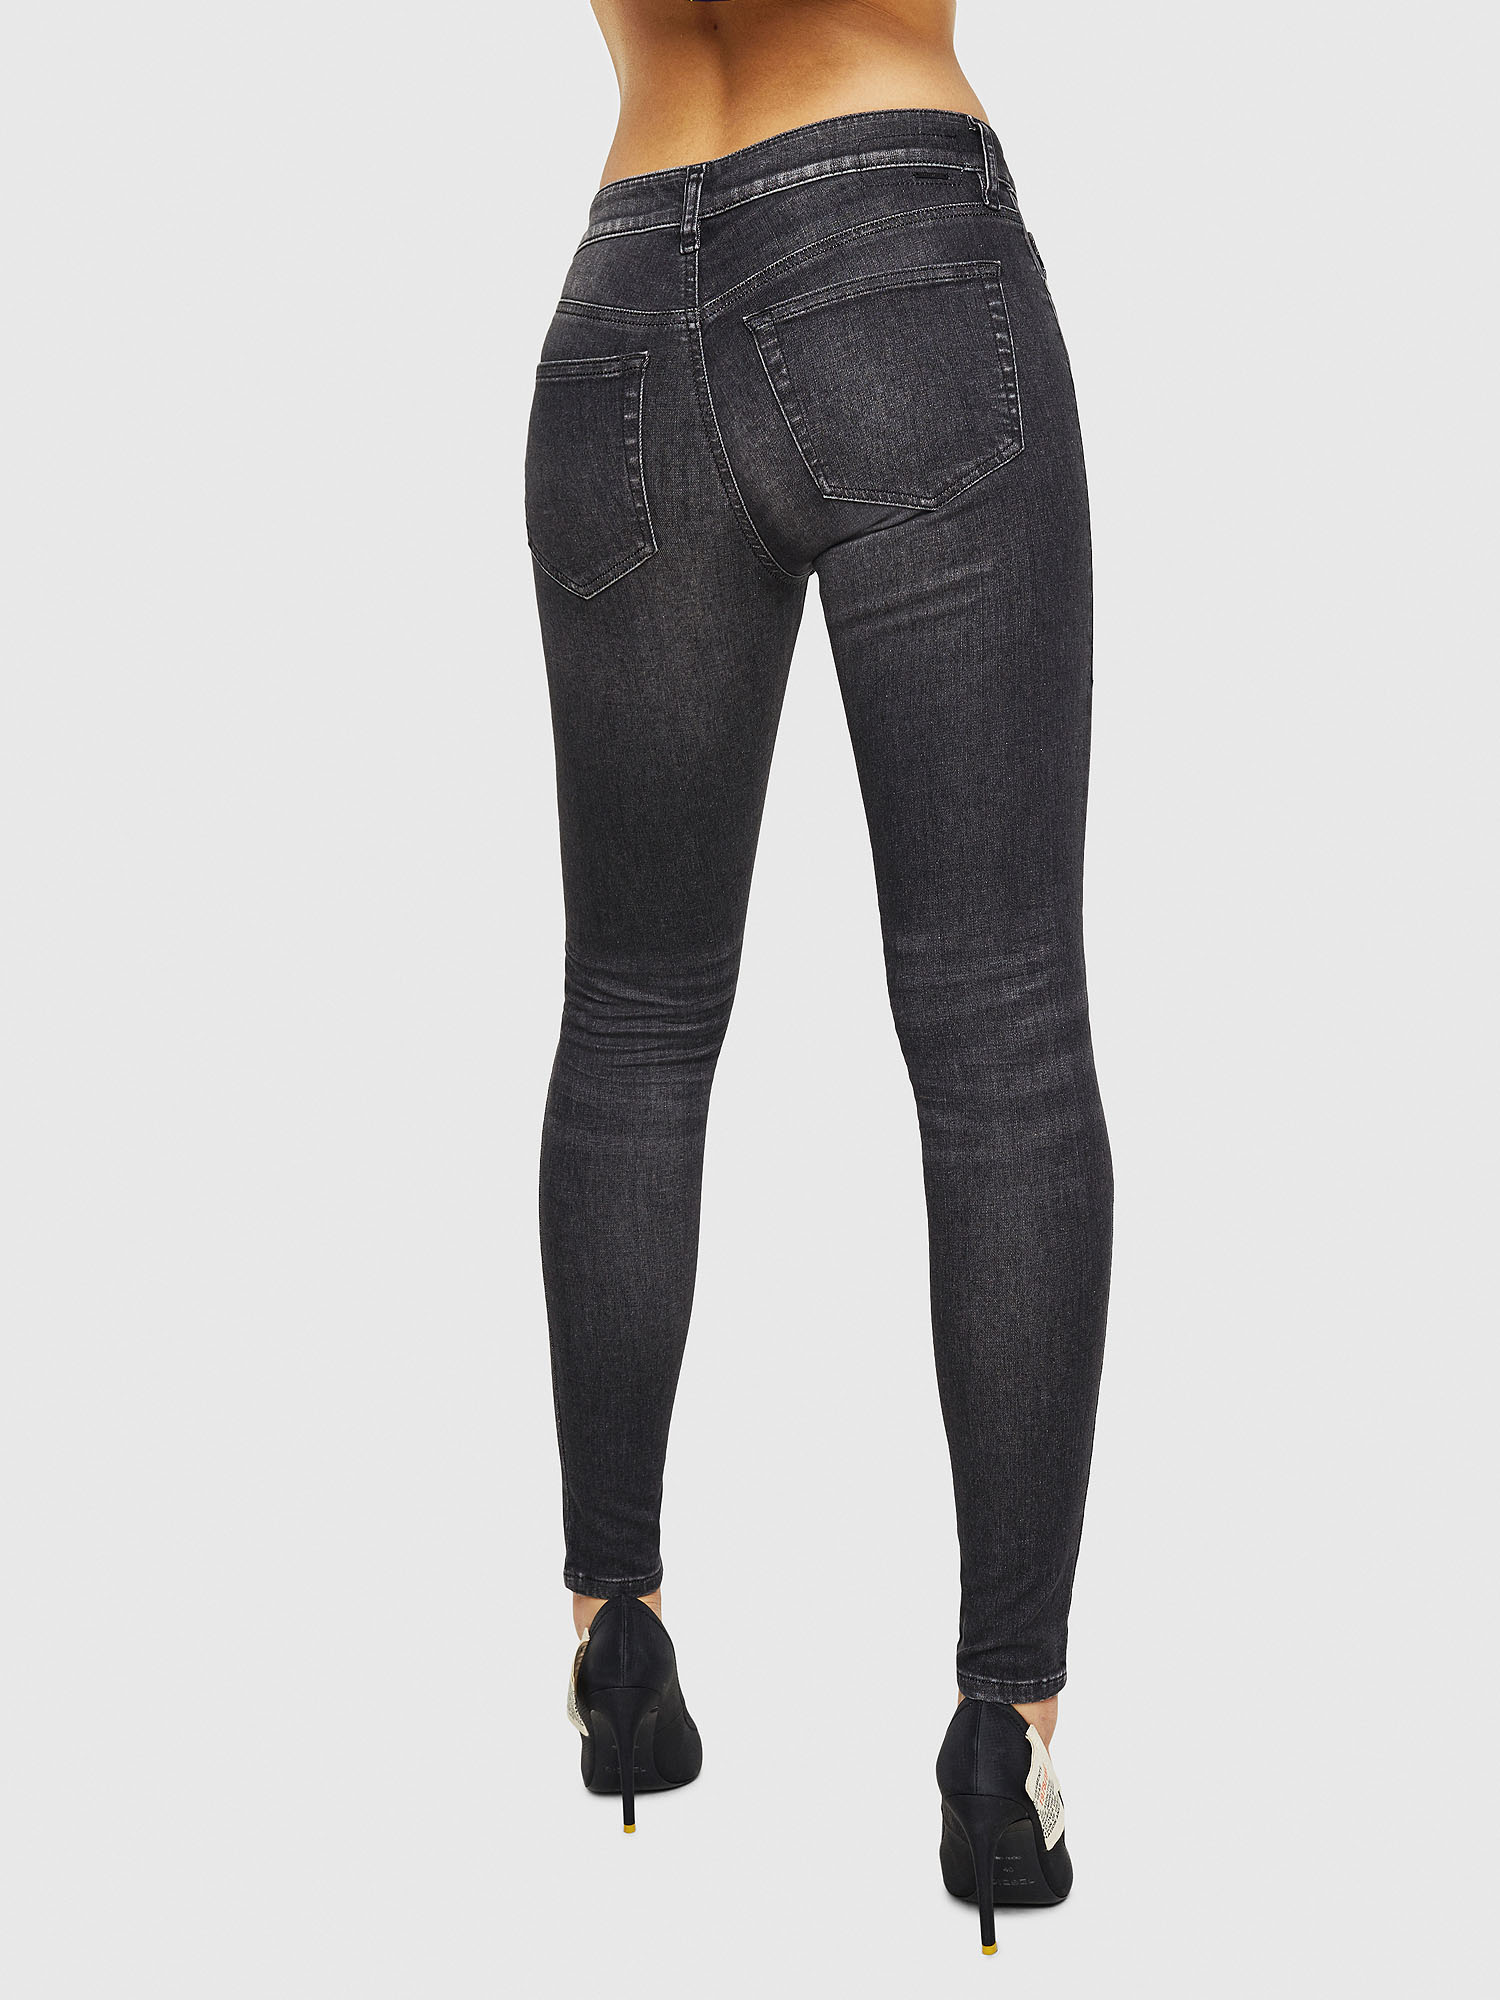 Diesel - Slandy 088AS,  - Jeans - Image 2